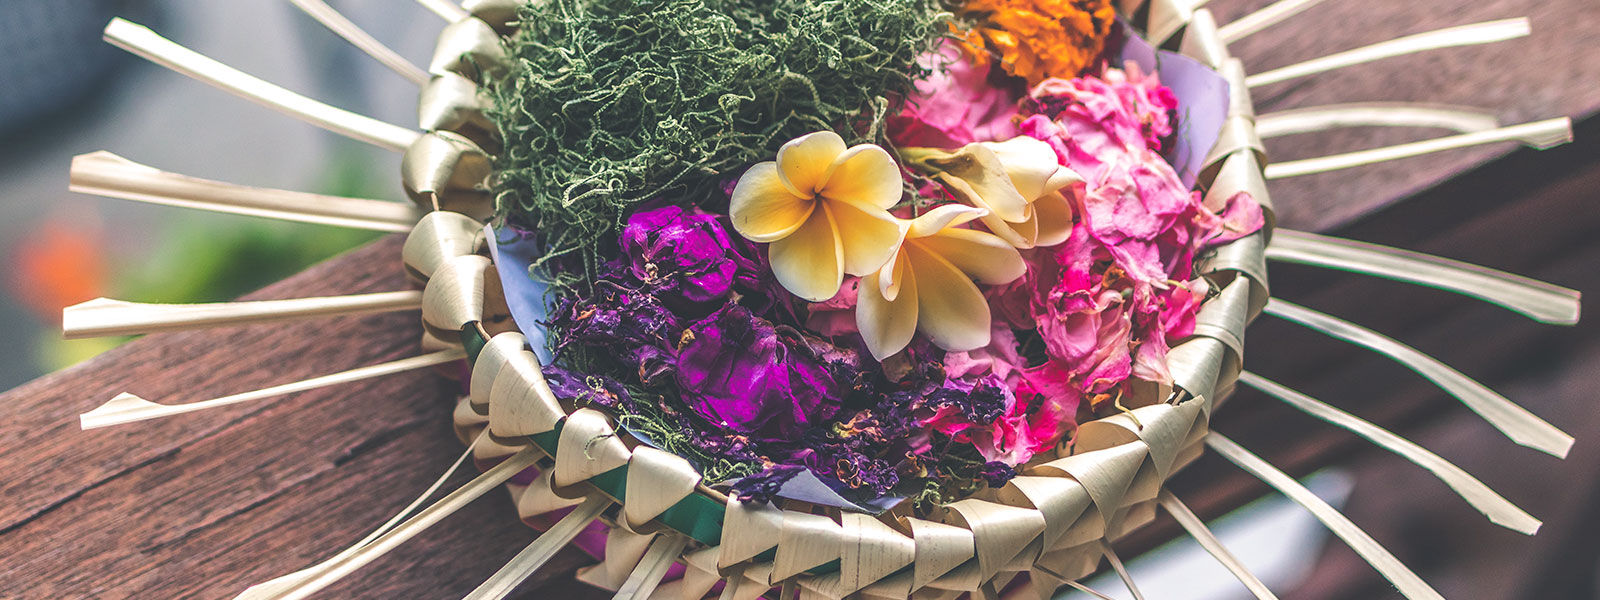 Flower and herb basket in Bali